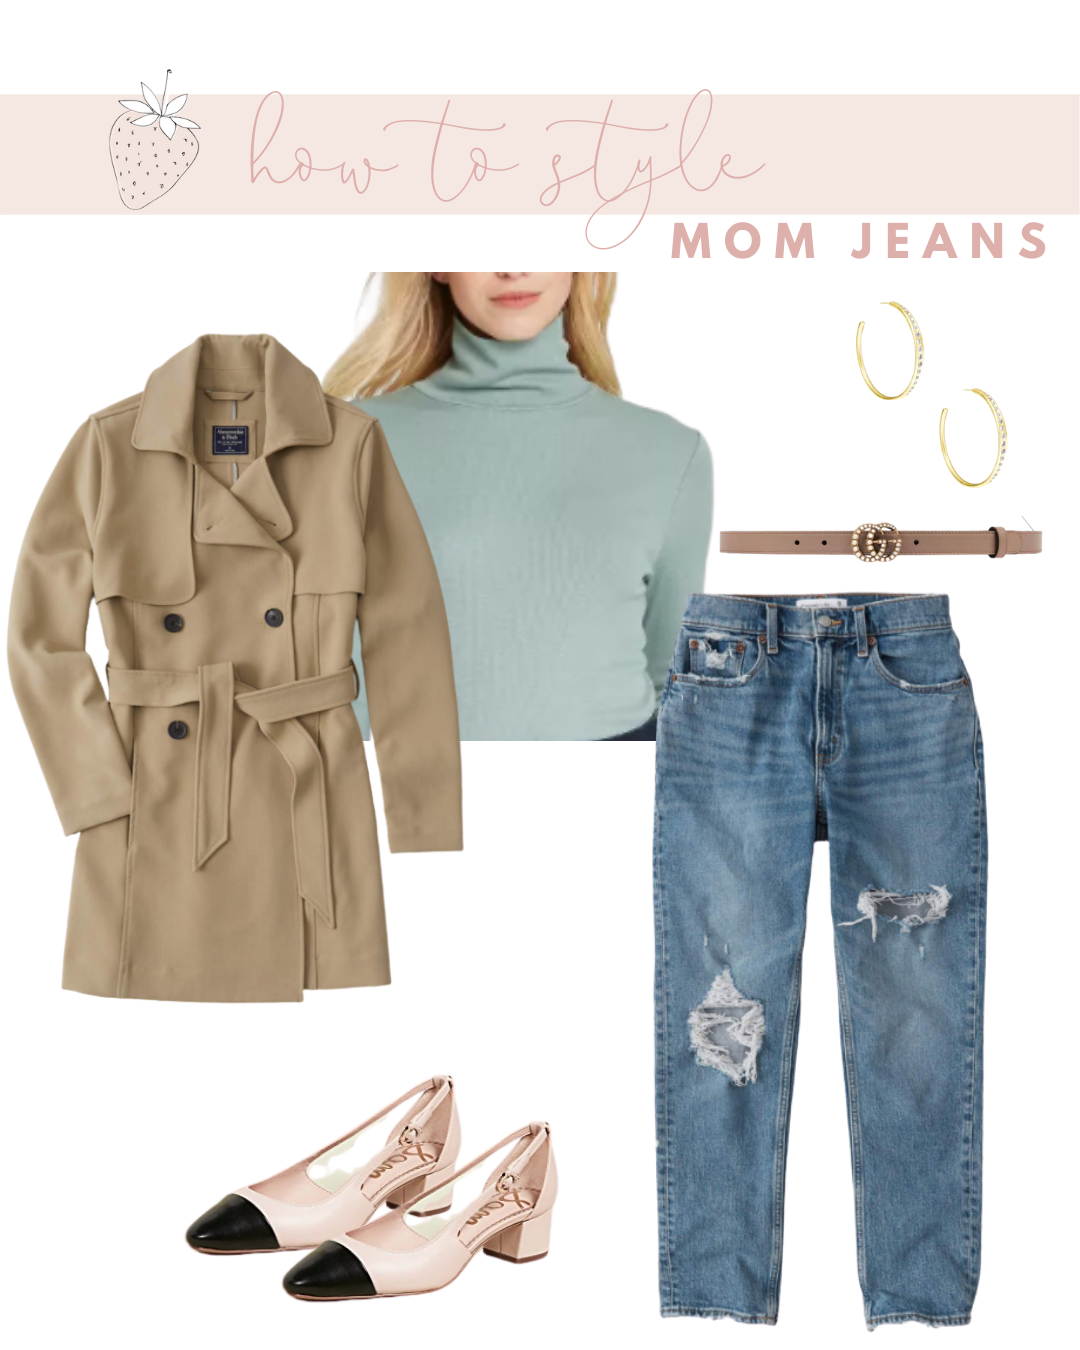 Mom Jeans with a Fitted Turtleneck and Sling Backs